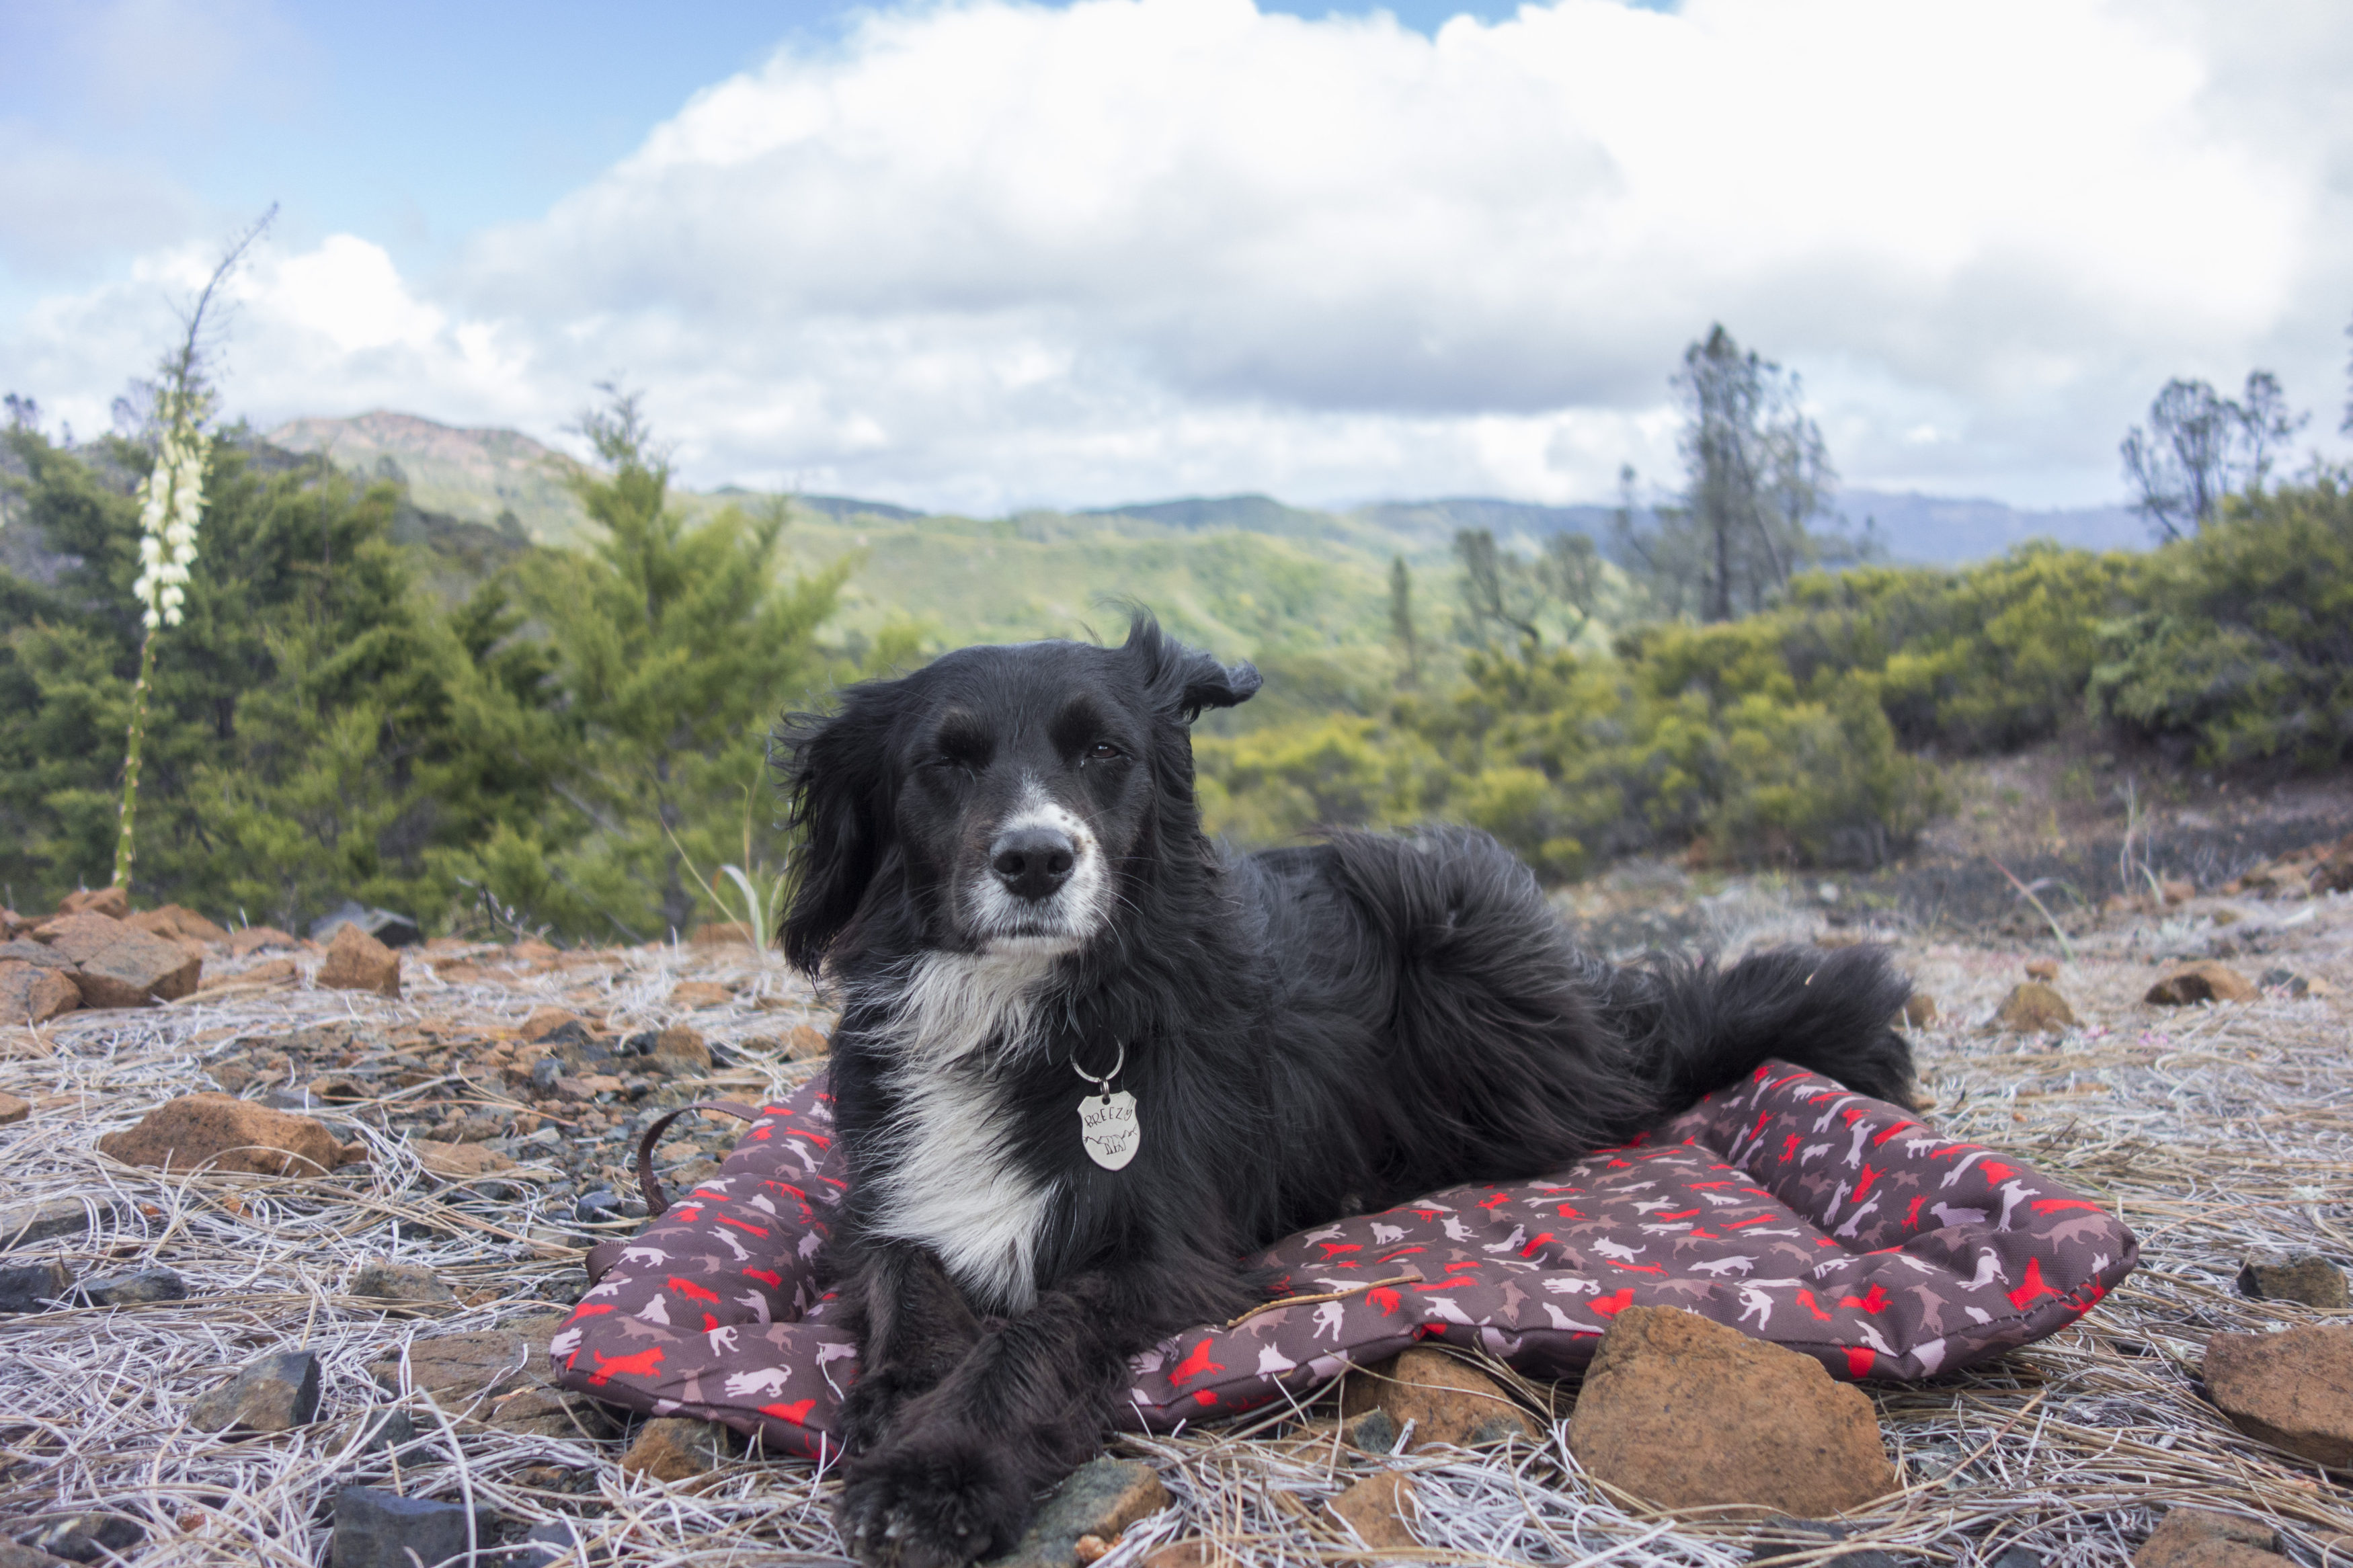 Awe Inspiring Outdoor Dog Bed Dogs That Hike Download Free Architecture Designs Intelgarnamadebymaigaardcom